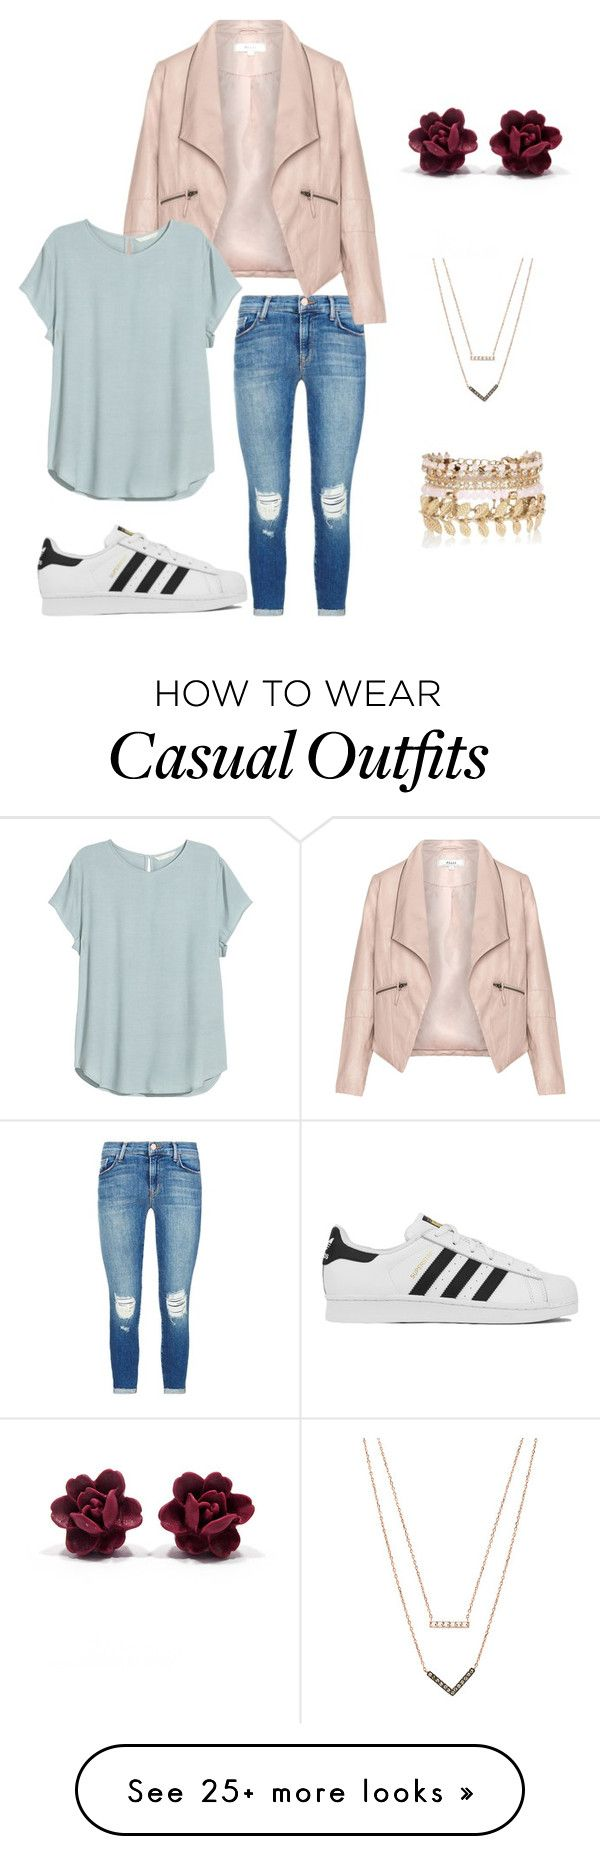 """Sport girls casual"" by ebrackett on Polyvore featuring J Brand, Zizzi, H&M, adidas, River Island, Michael Kors, women's clothing, women, female and woman"